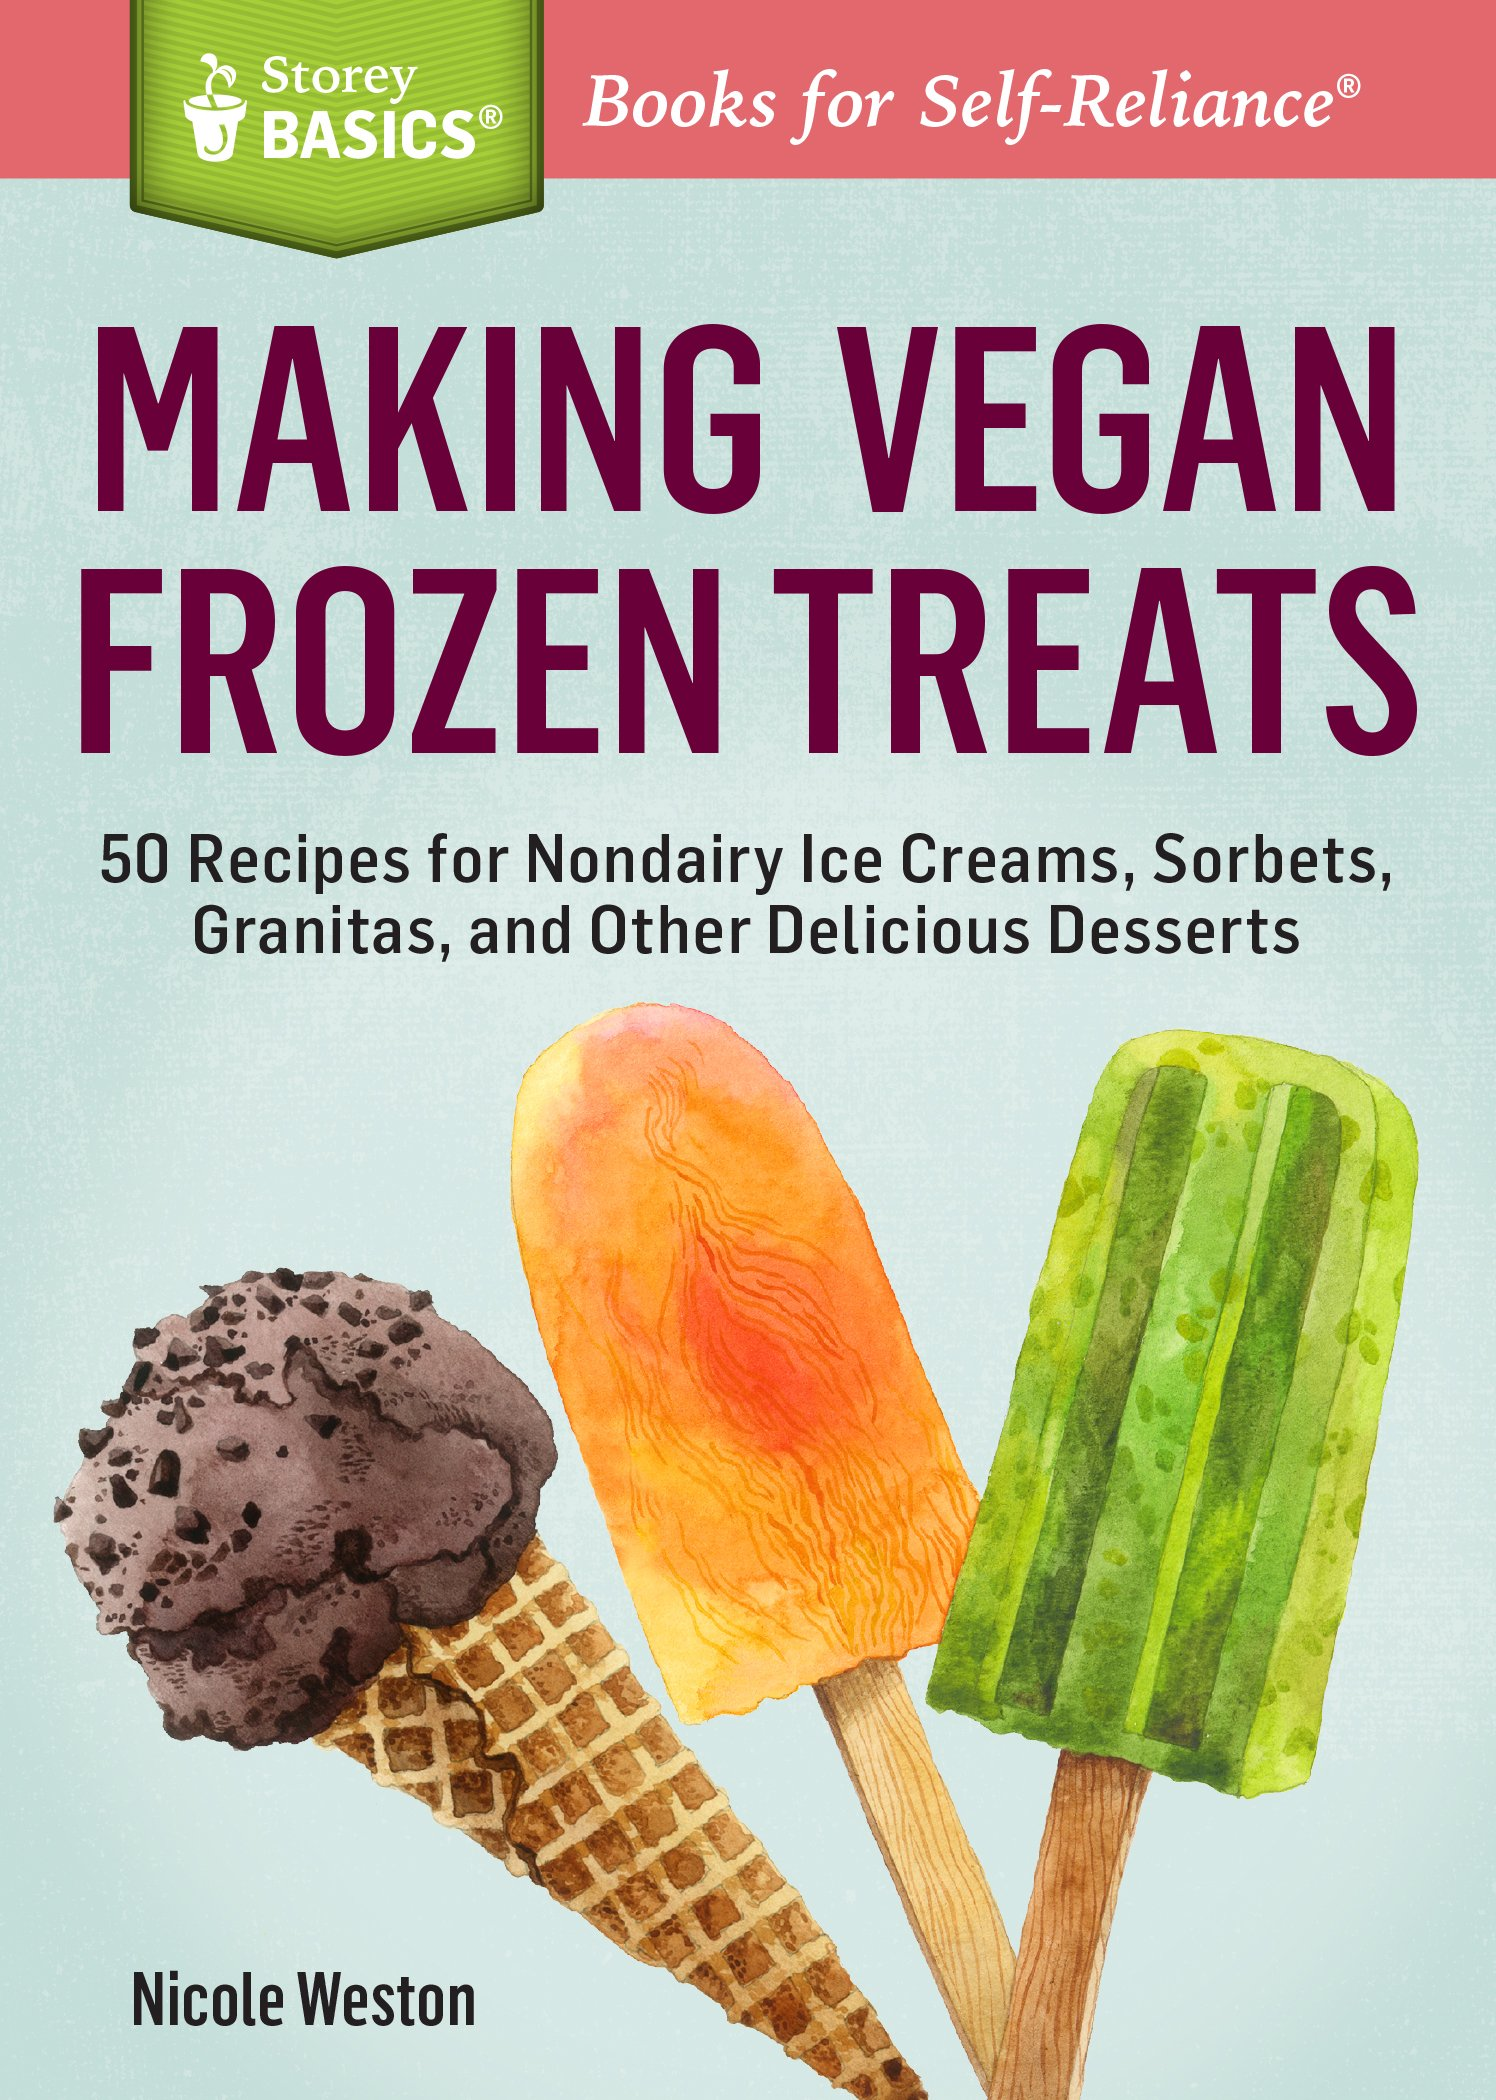 Download Making Vegan Frozen Treats: 50 Recipes for Nondairy Ice Creams, Sorbets, Granitas, and Other Delicious Desserts. A Storey BASICS® Title PDF